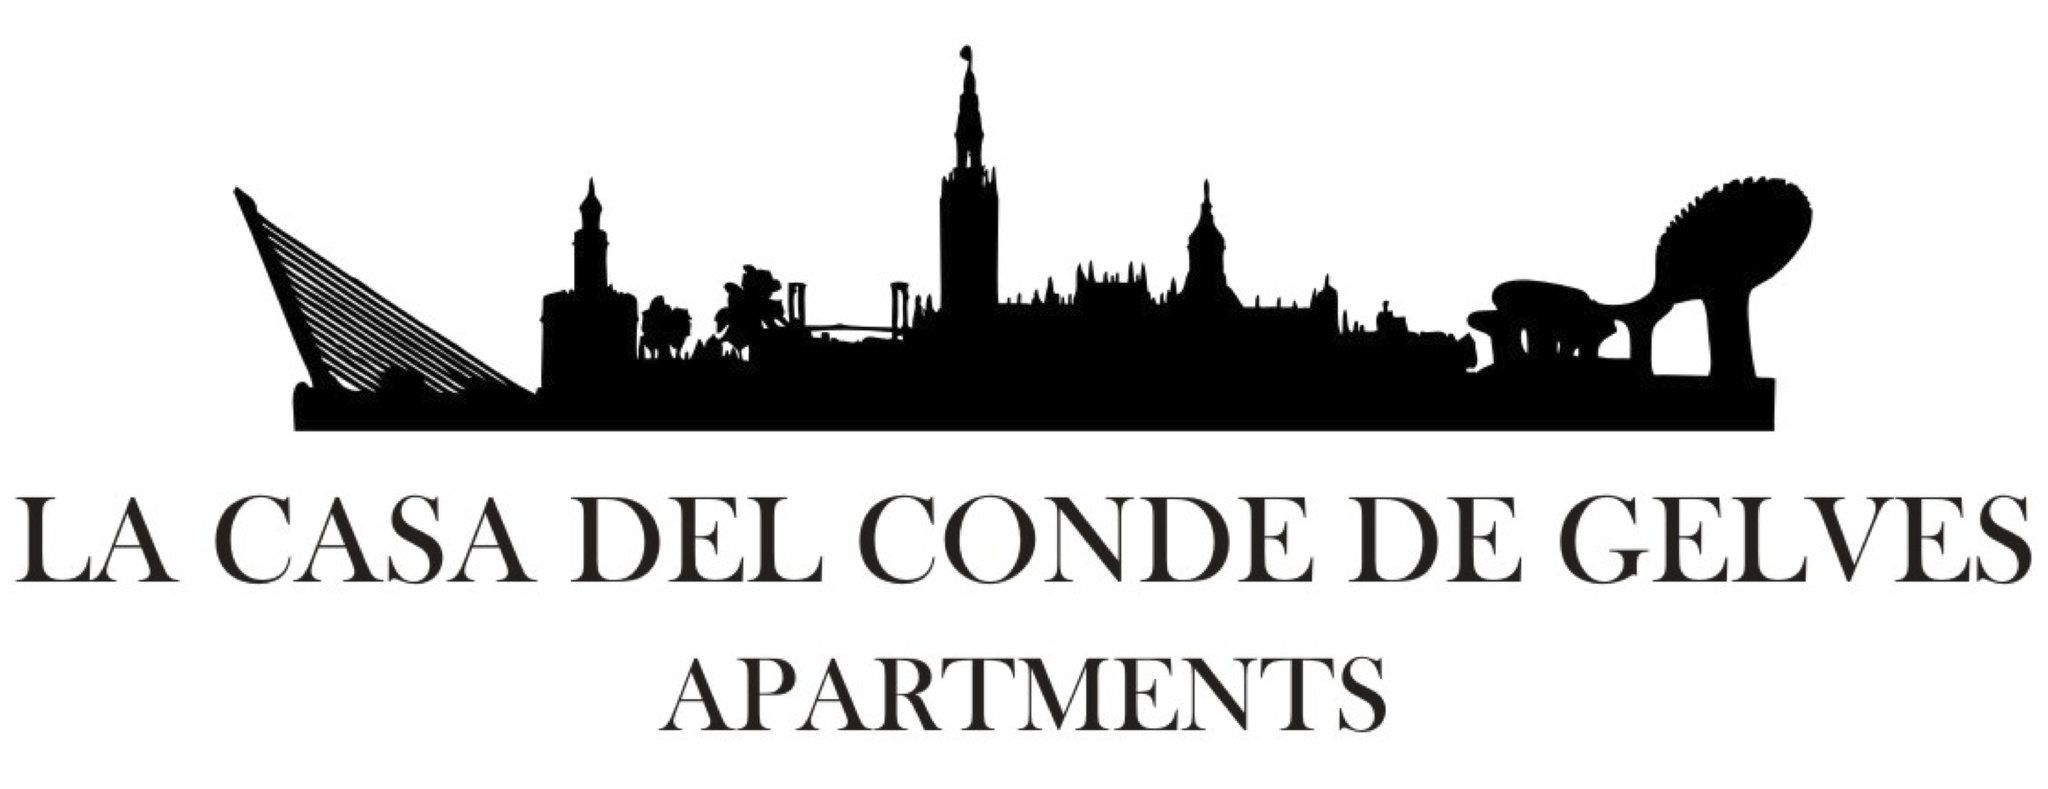 La Casa del Conde de Gelves Apartments